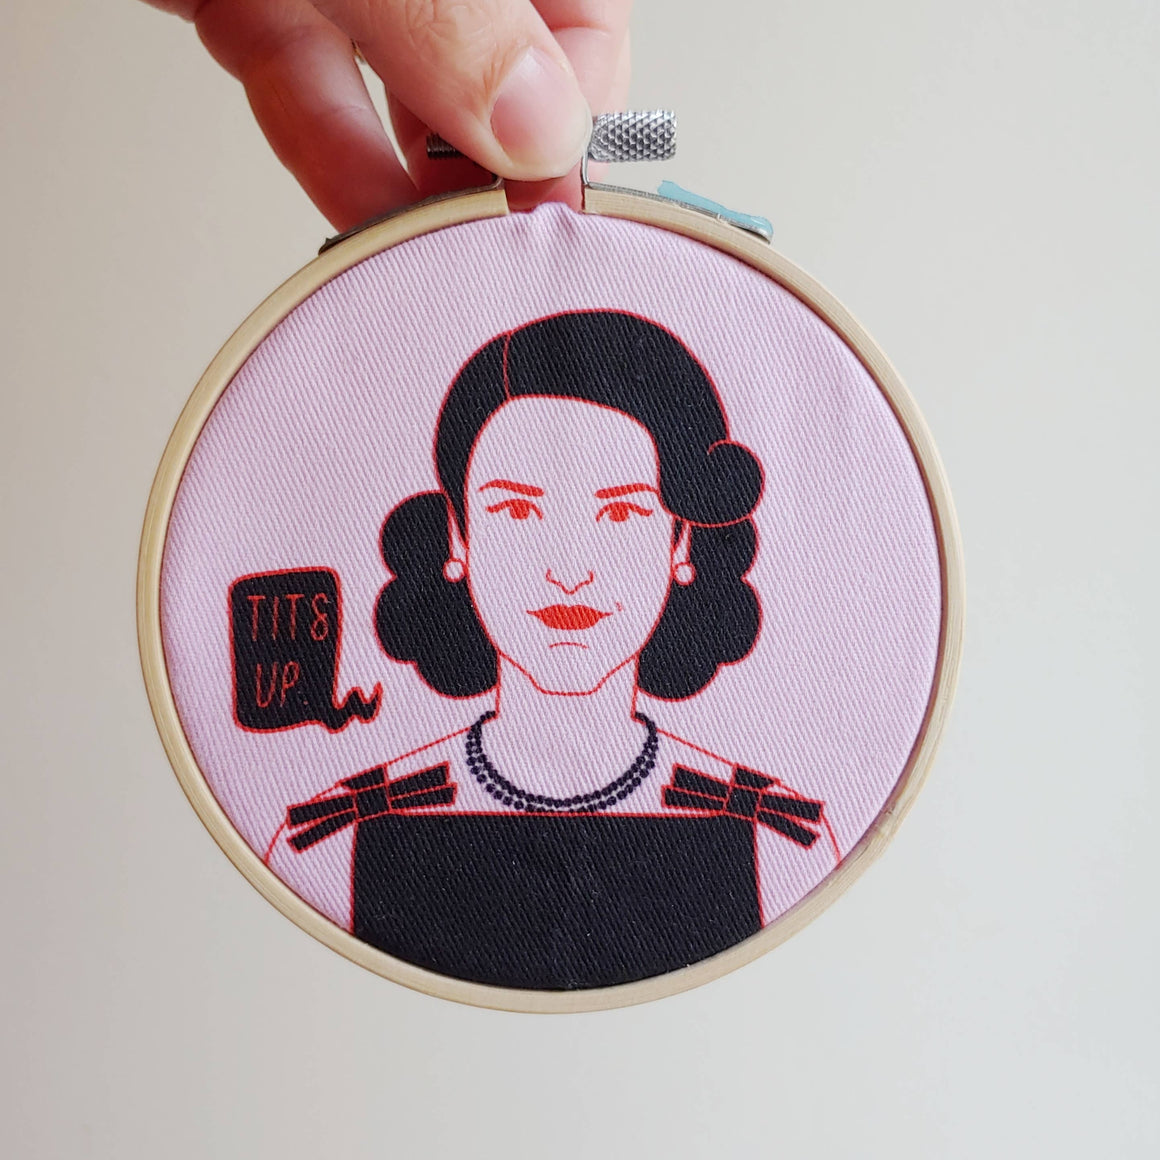 Holly Oddly: Mrs. Maisel Embroidery Kit